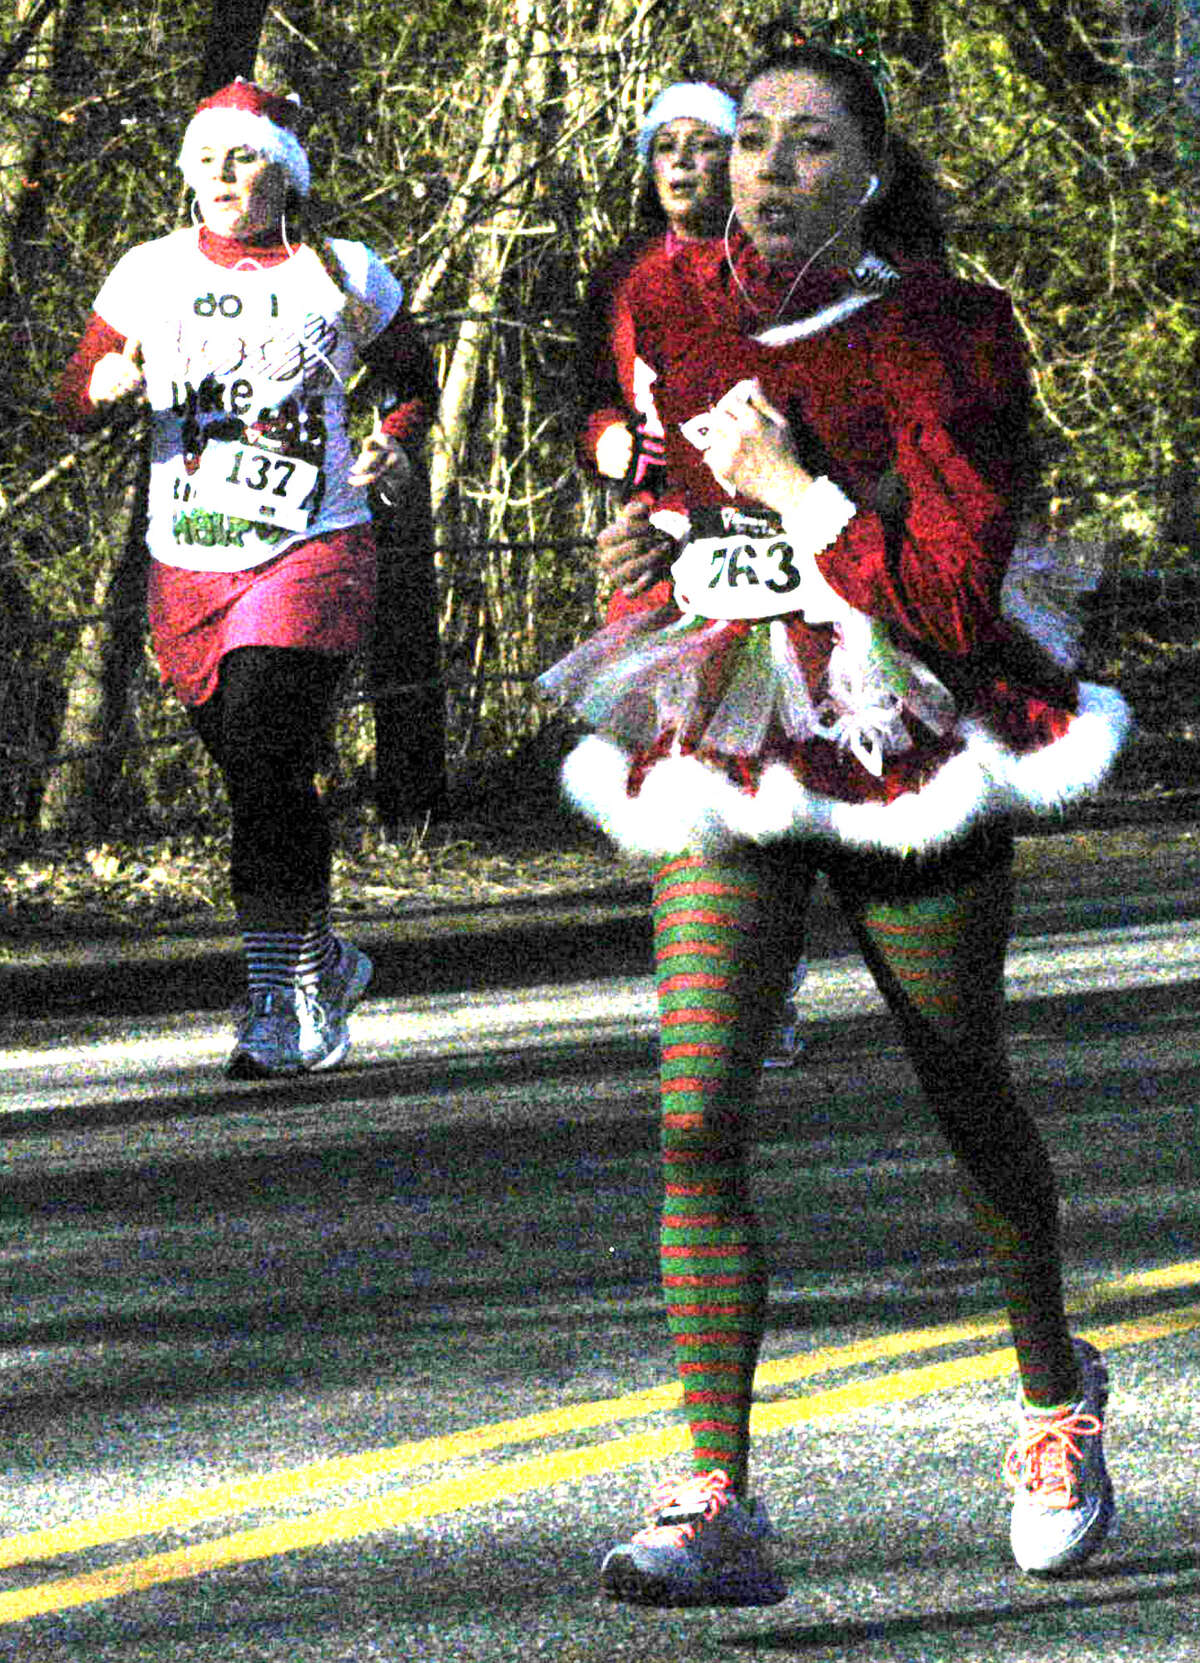 The seventh annual Run Santa Run 5K Race will take place Saturday at Harrybrooke Park in New Milford. Find out more.